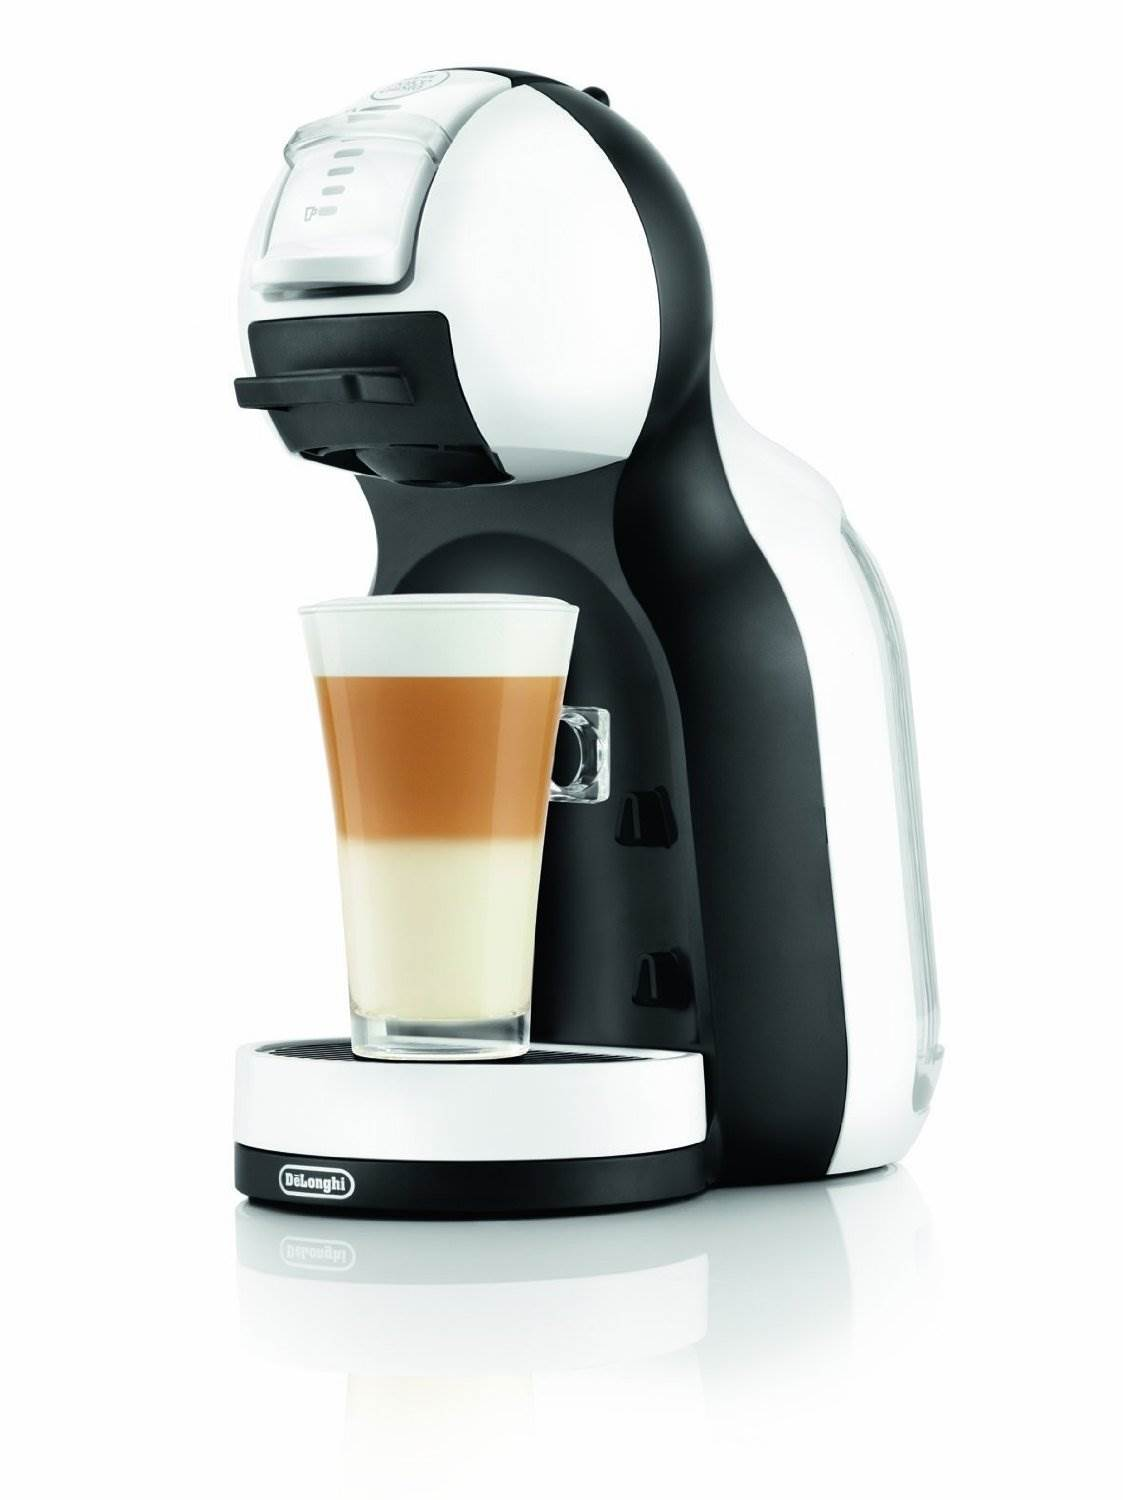 delonghi nescafe dolce gusto mini me multi drinks machine edg305 wb around the clock offers. Black Bedroom Furniture Sets. Home Design Ideas